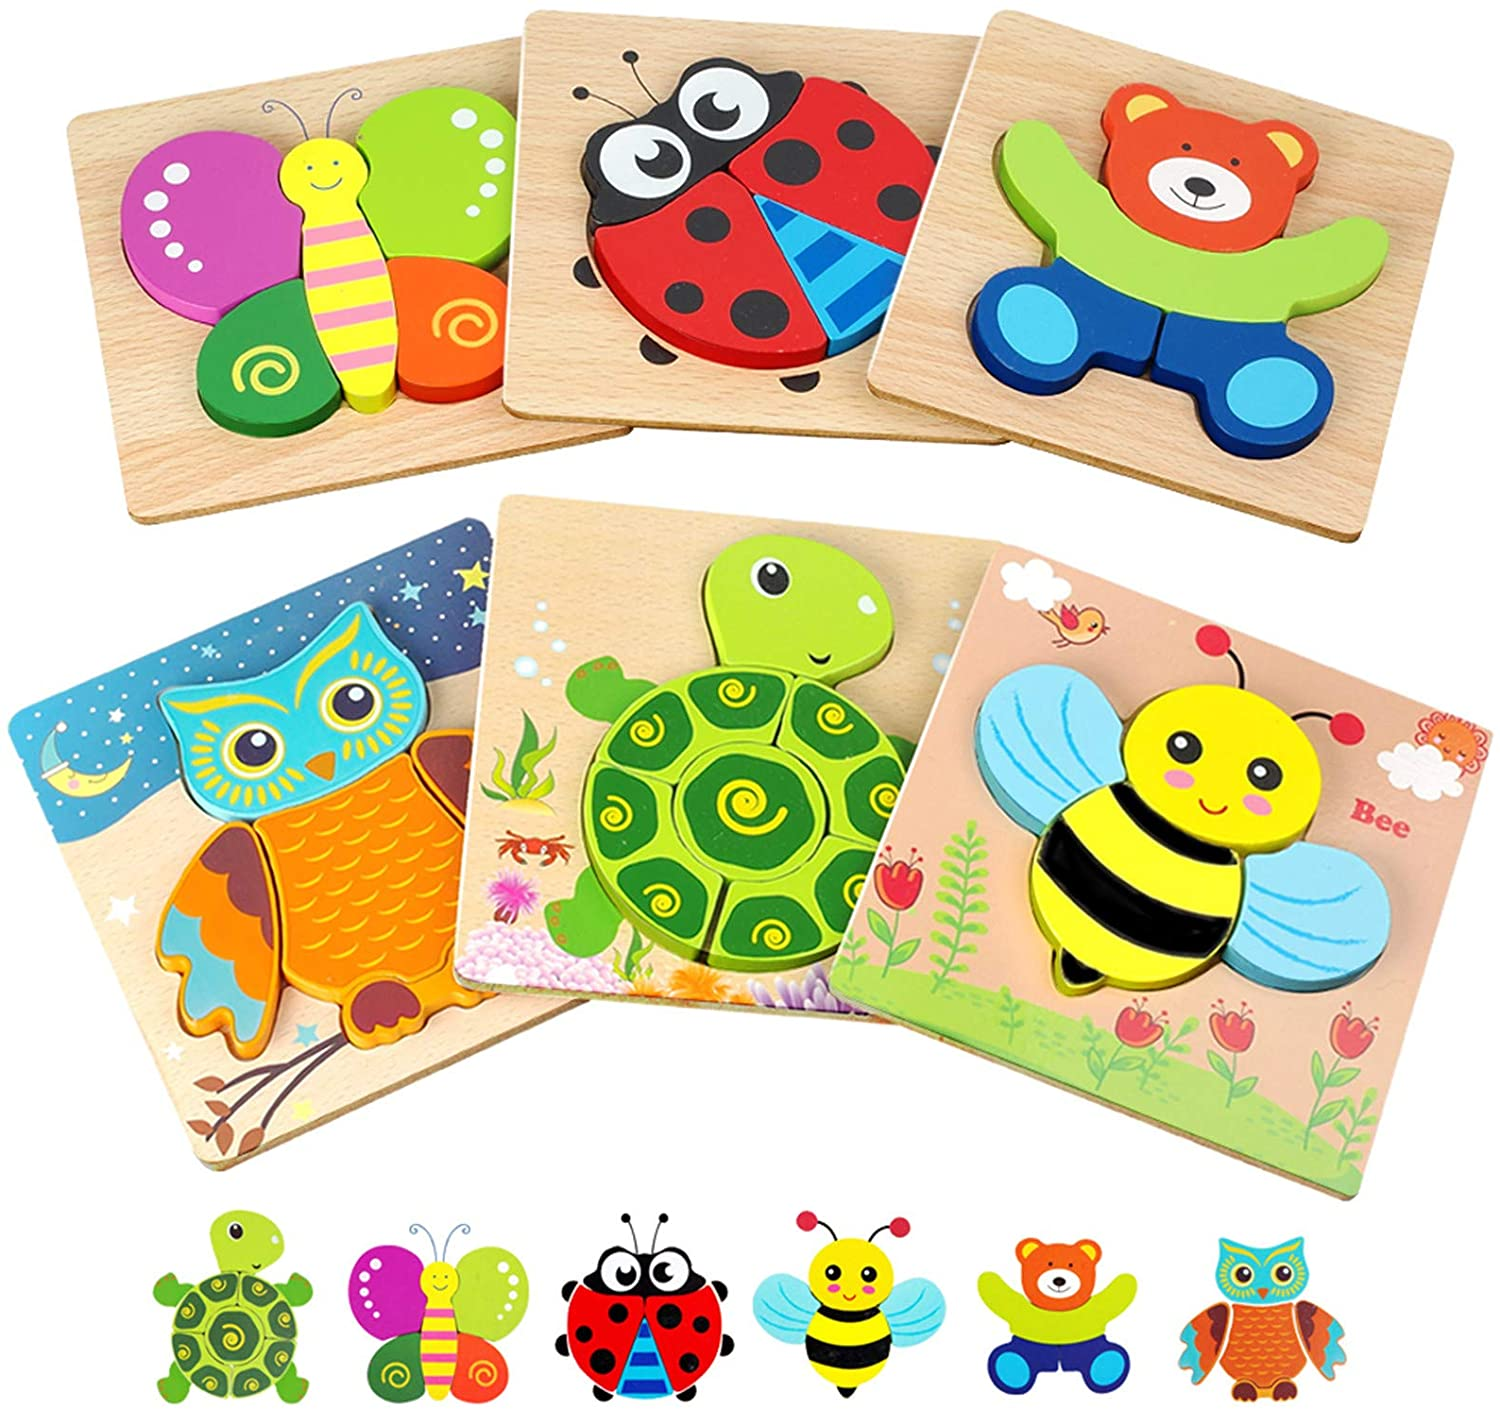 2-year-old-girls-wooden-puzzles